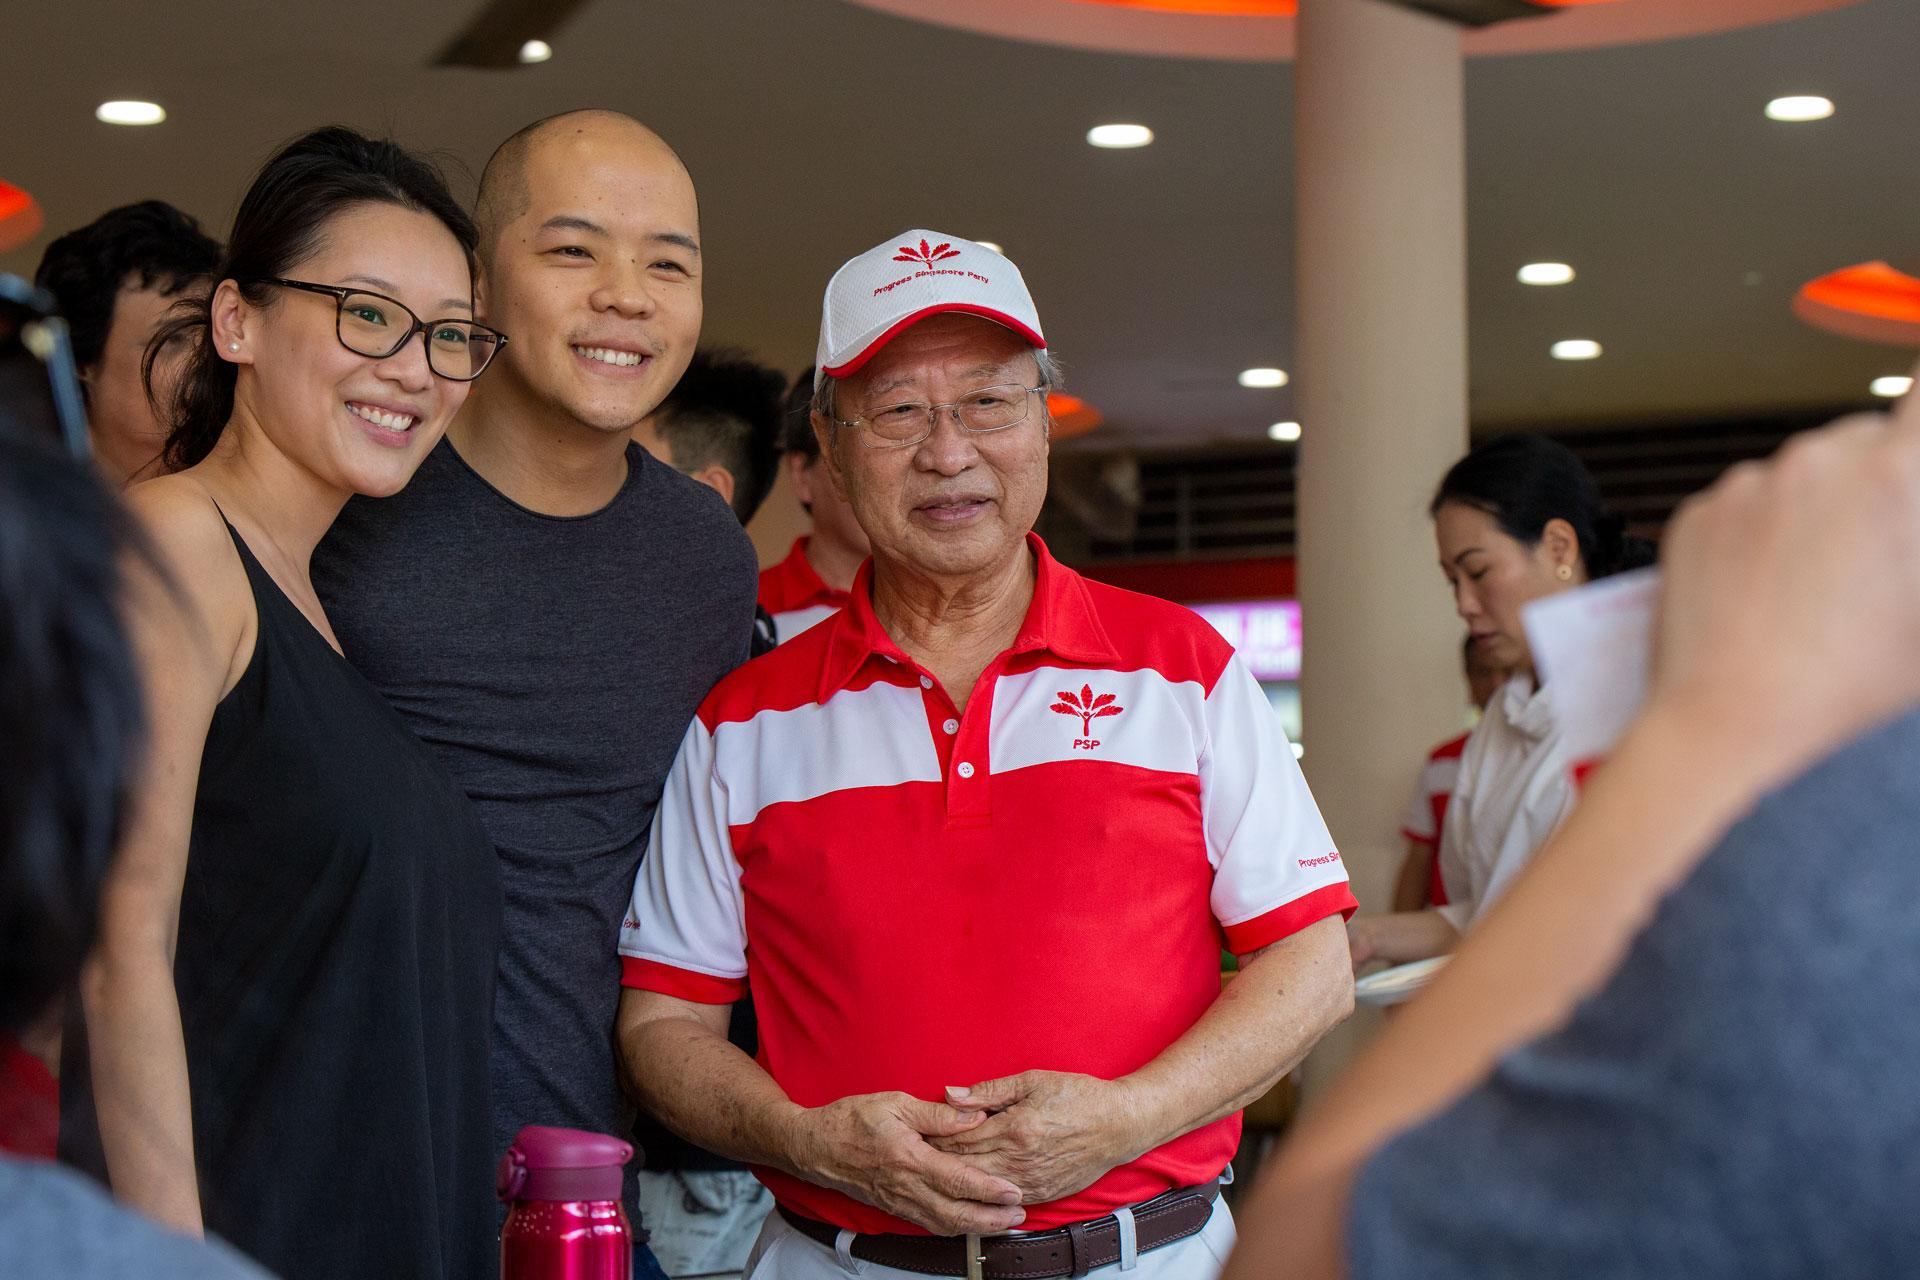 PSP's younger members given room to 'manage the ground', says leader Tan Cheng Bock after party's first islandwide walkabout